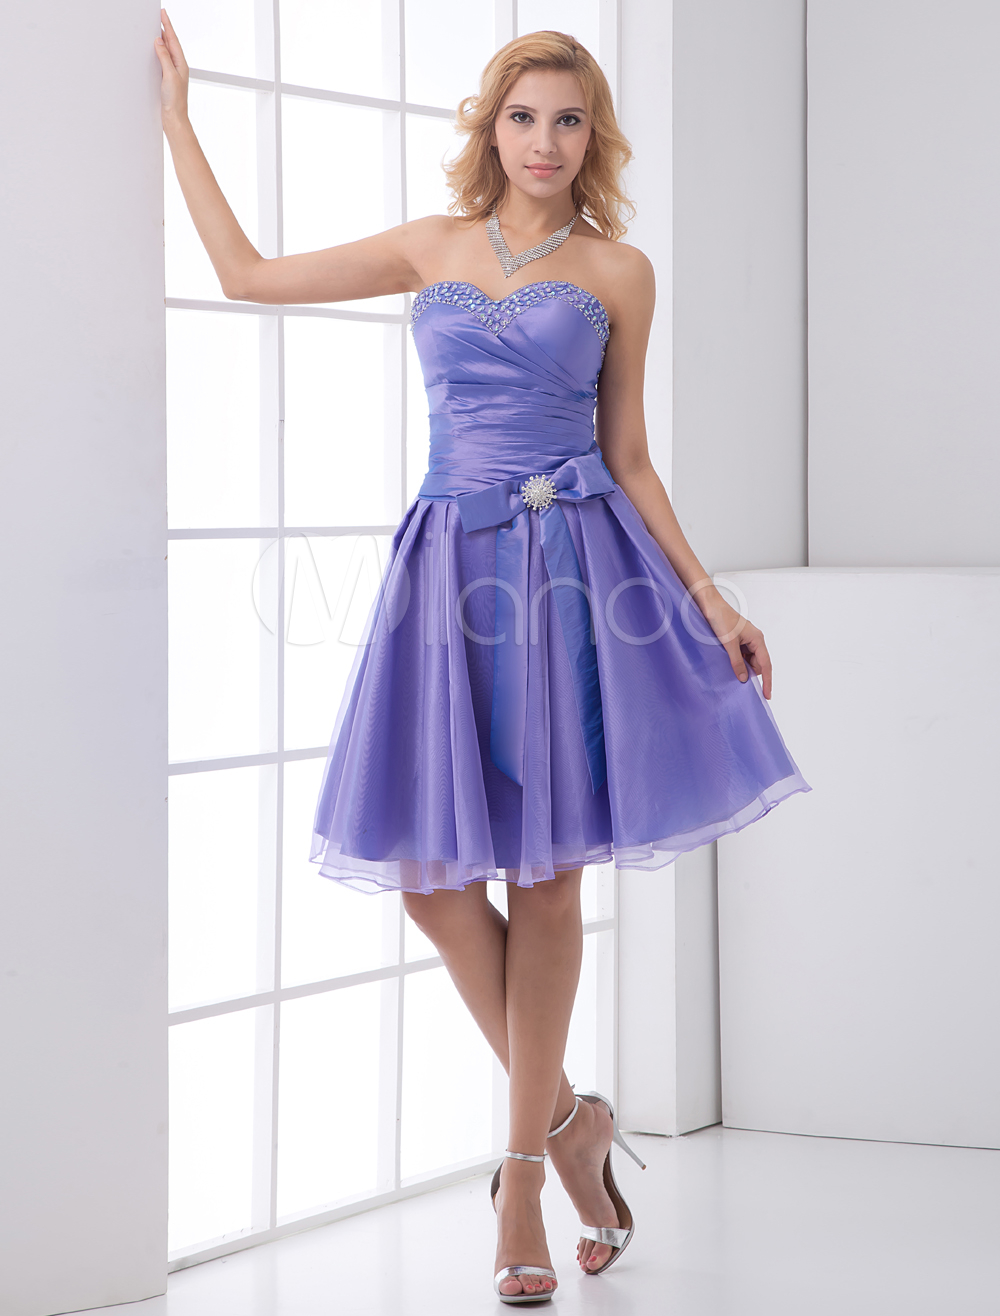 Organza Prom Dress Violet Short Sweetheart Strapless Beading Homecoming Dress Ruched Bow Deco Party Dress